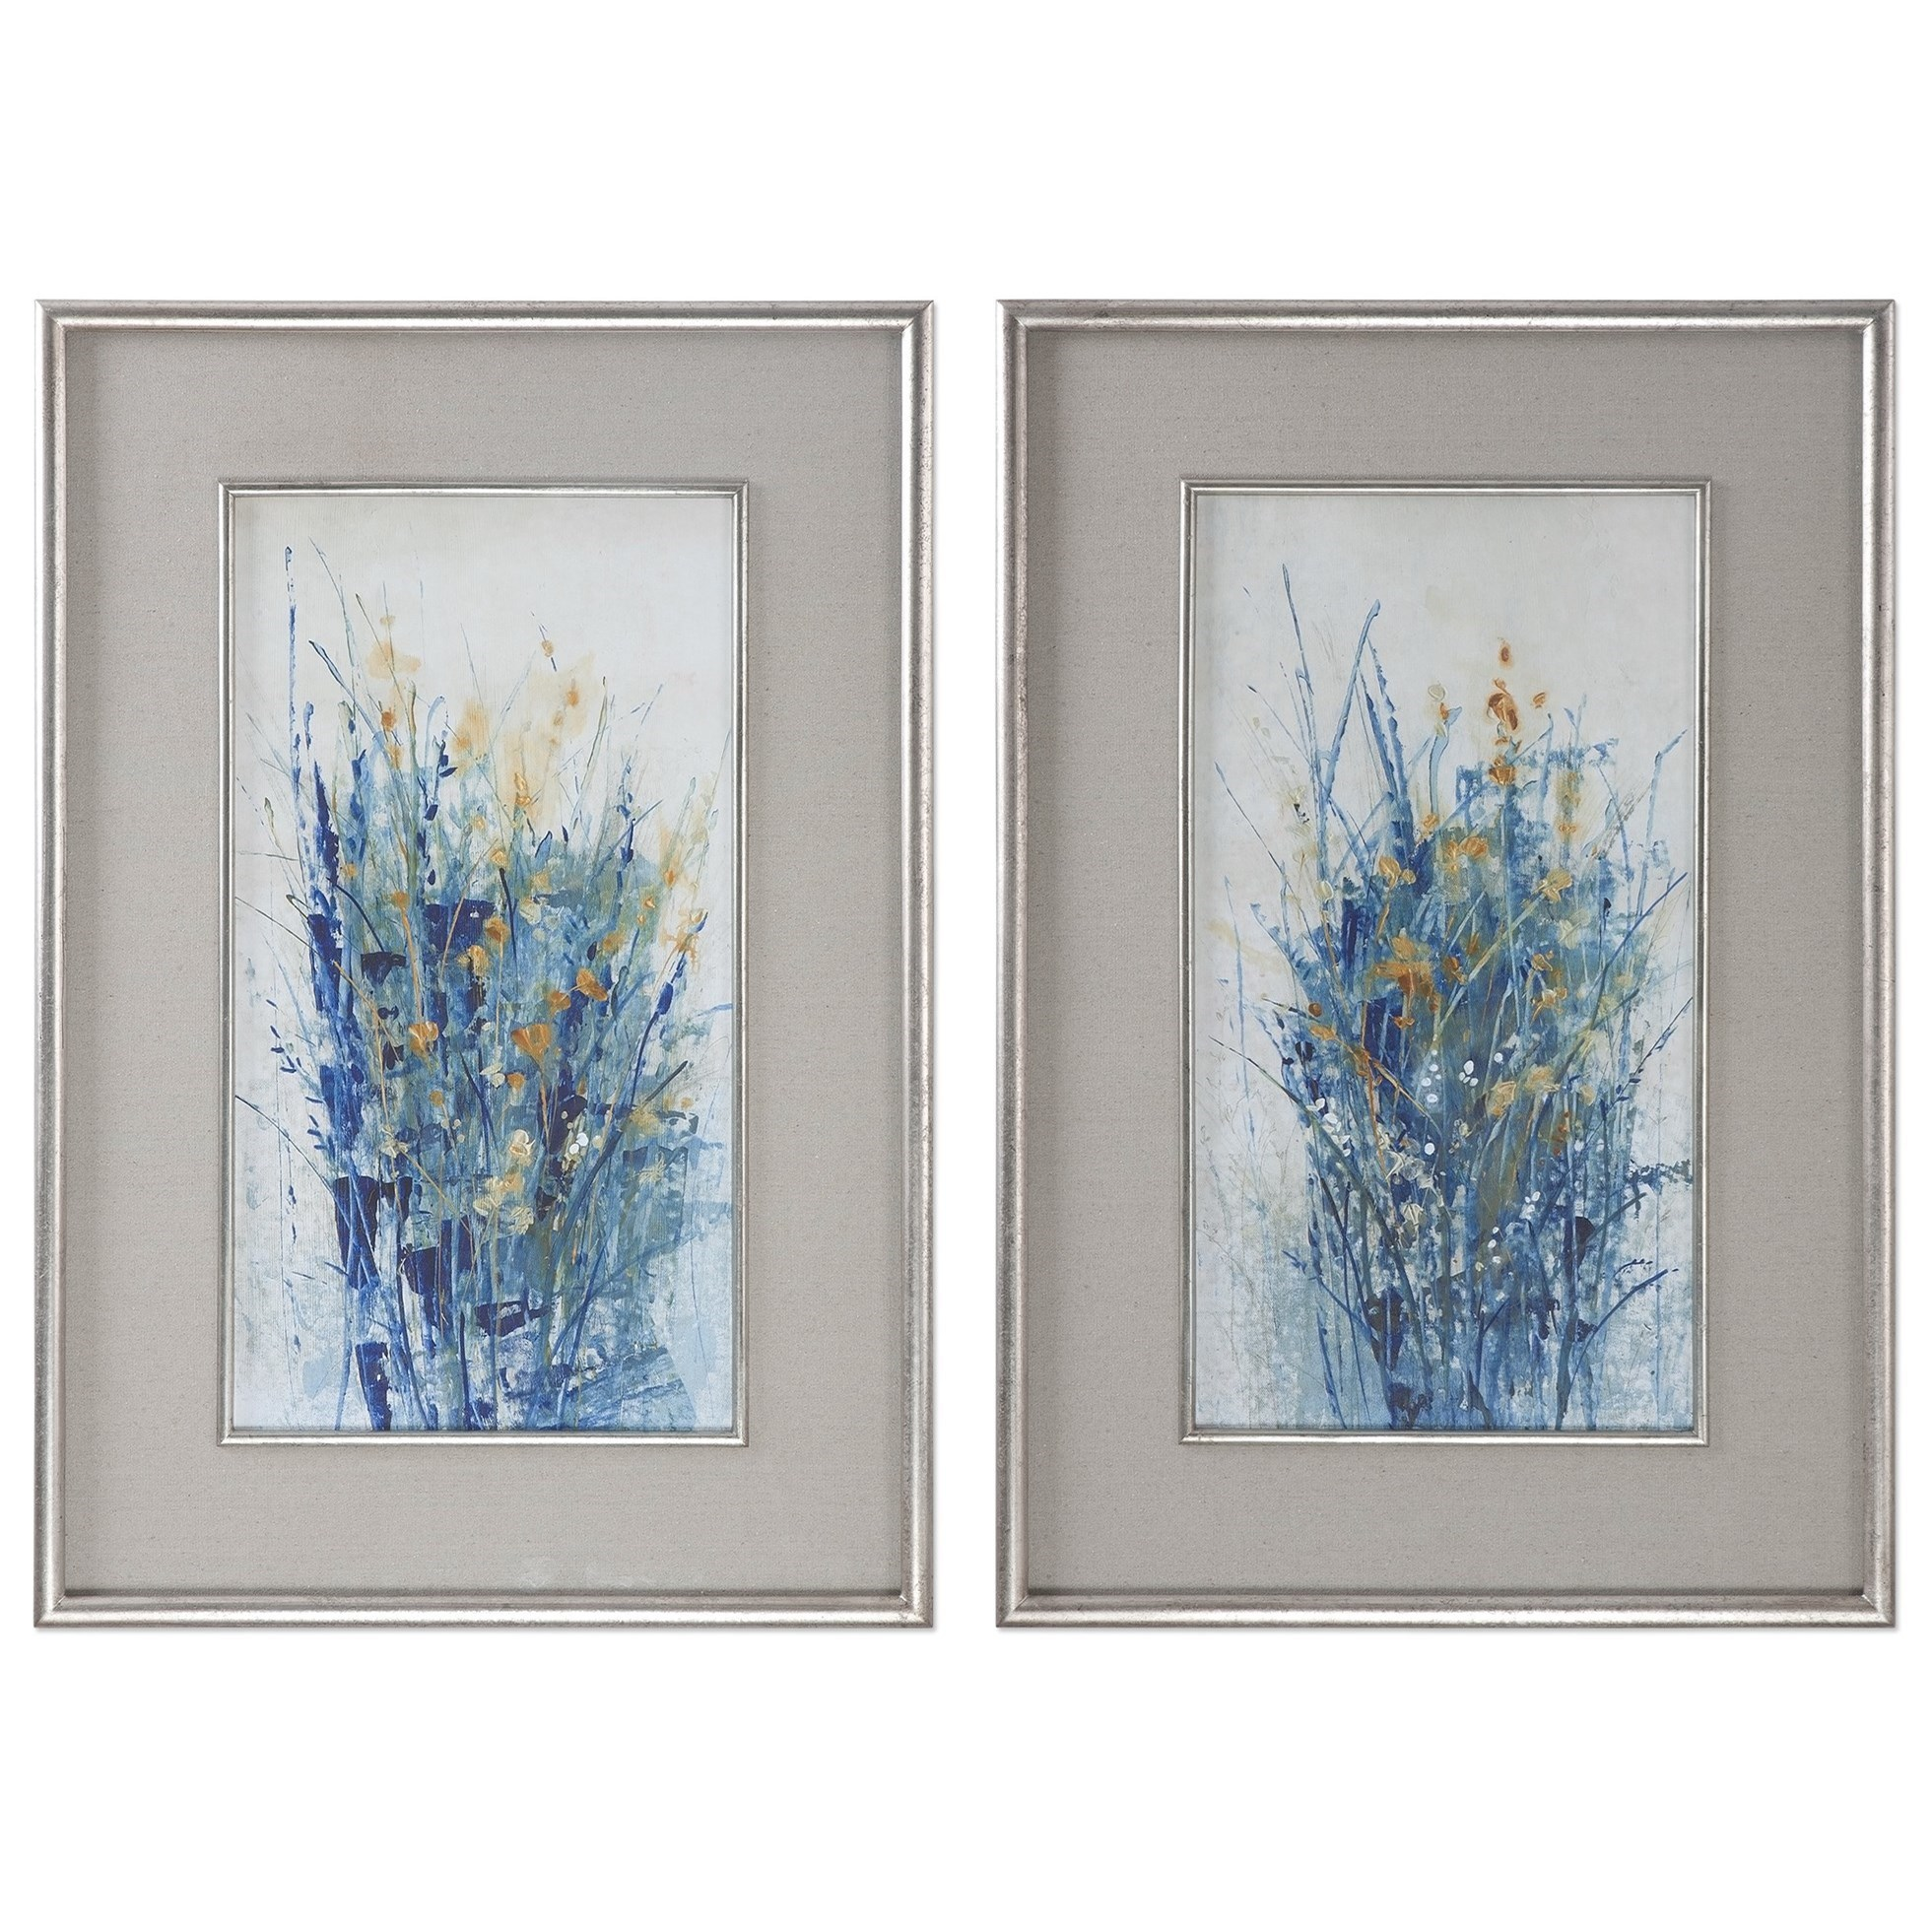 Uttermost Art Indigo Florals Framed Art S/2 - Item Number: 41558